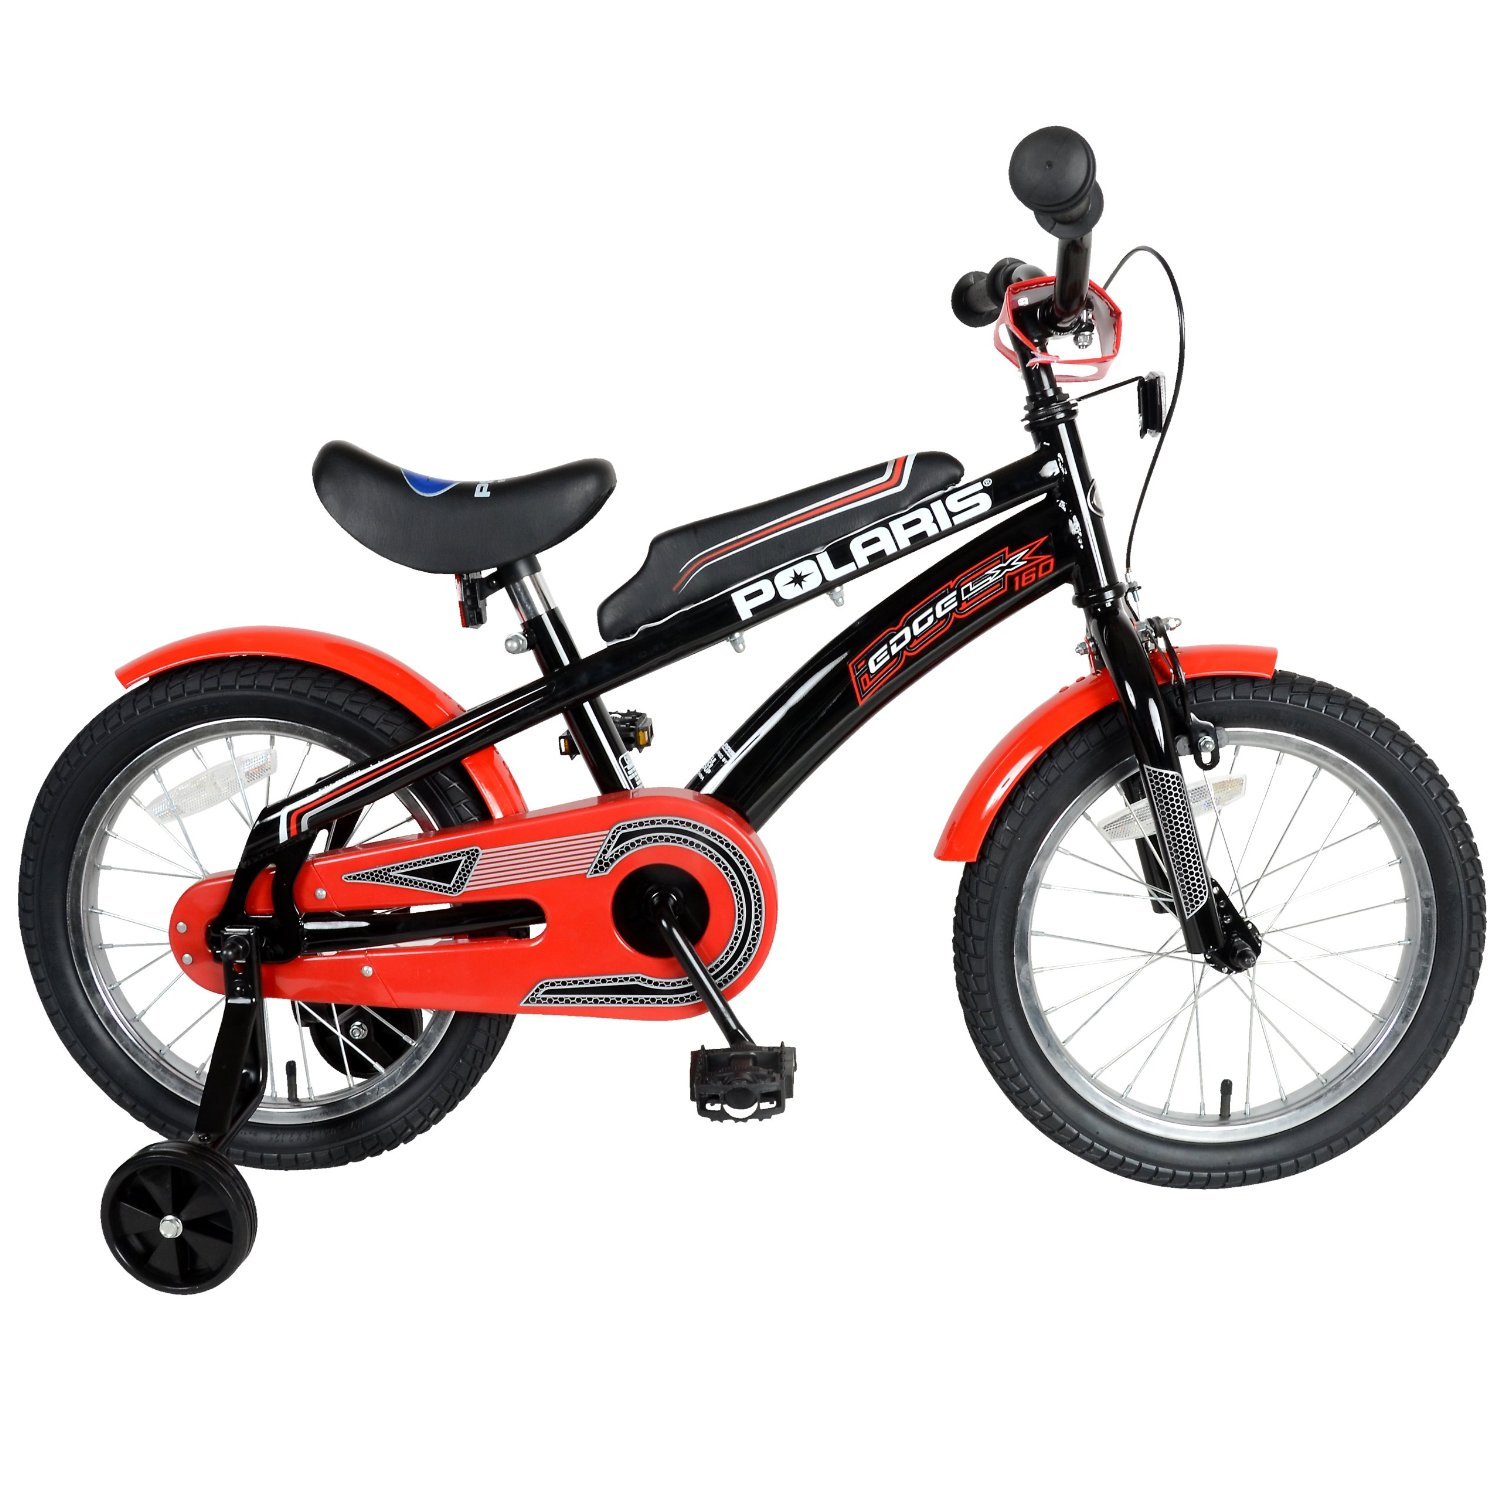 "Polaris Edge LX 160 16"" Kid's Bike"